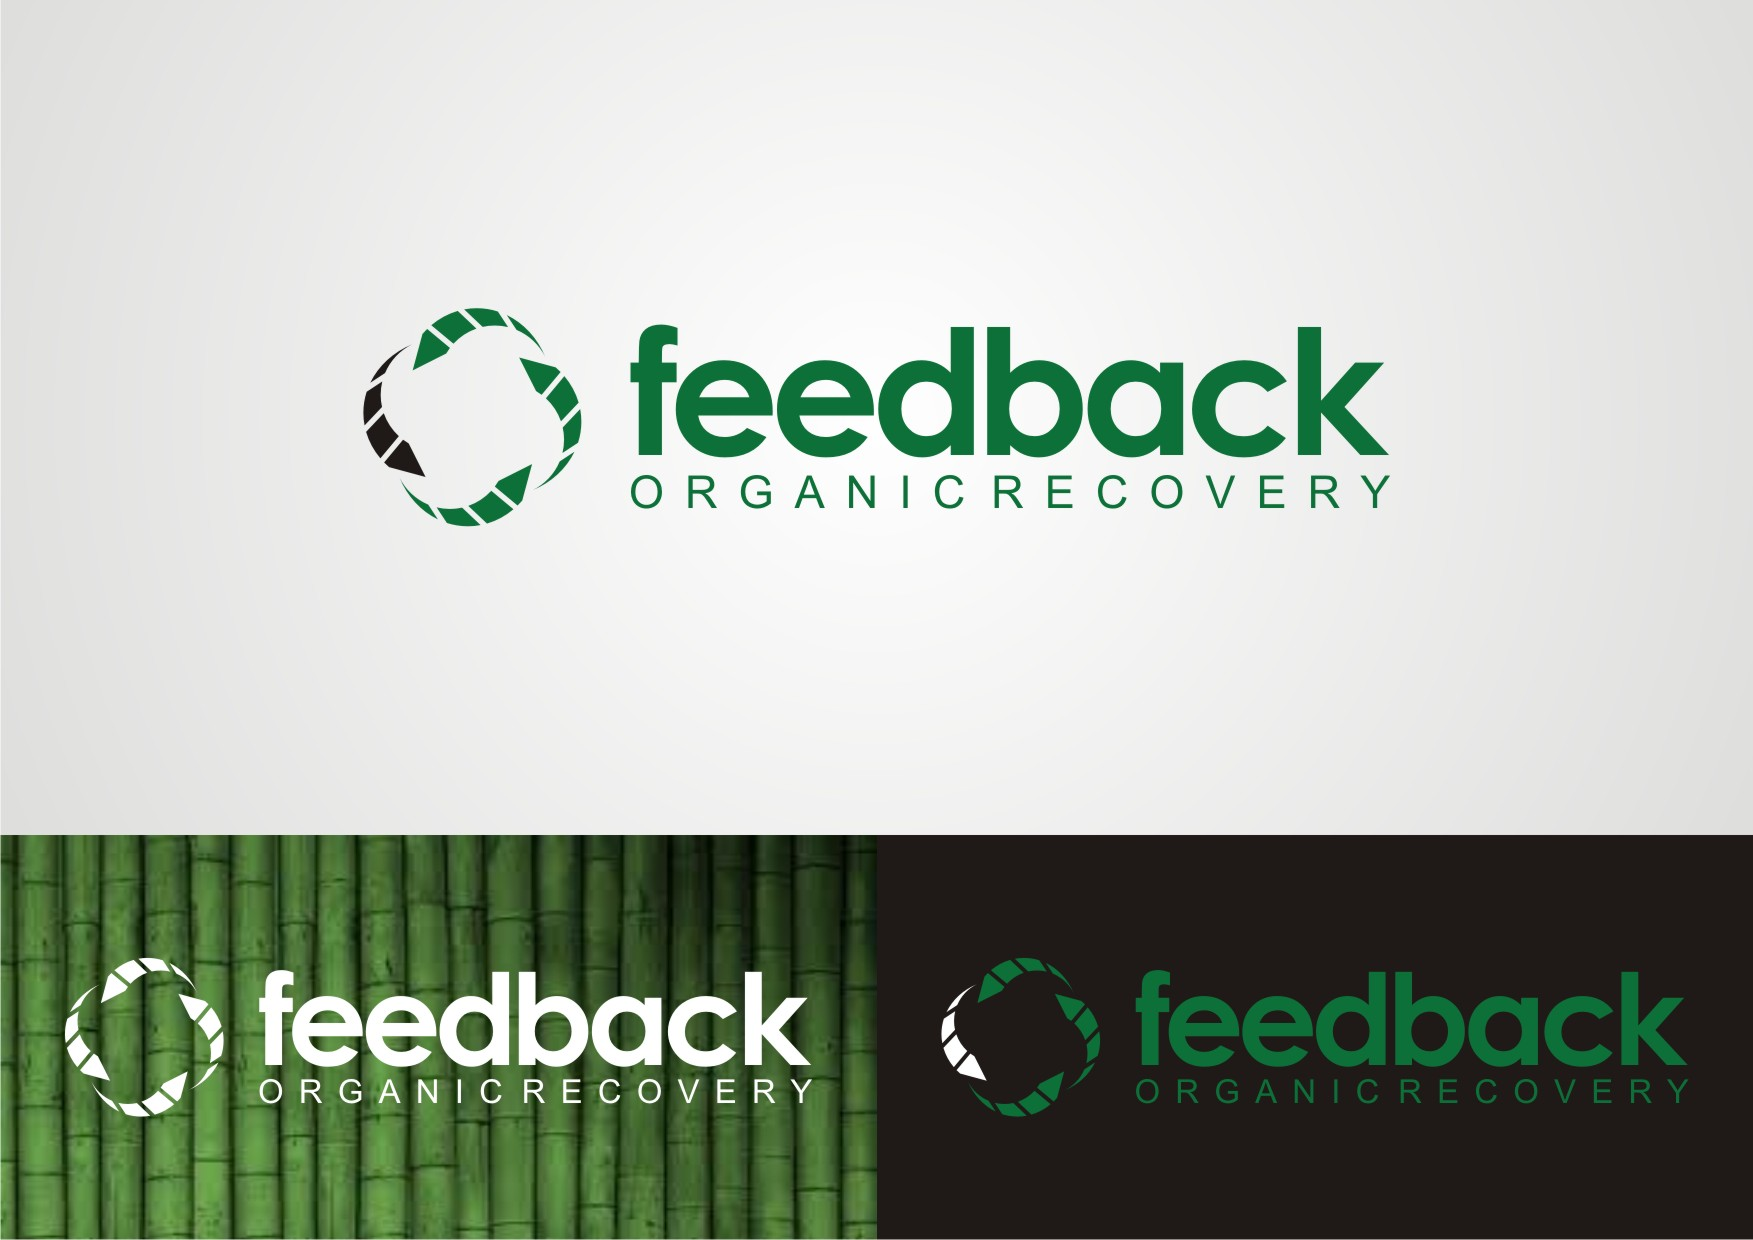 Logo Design by Private User - Entry No. 28 in the Logo Design Contest Feedback Organic Recovery  Logo Design.